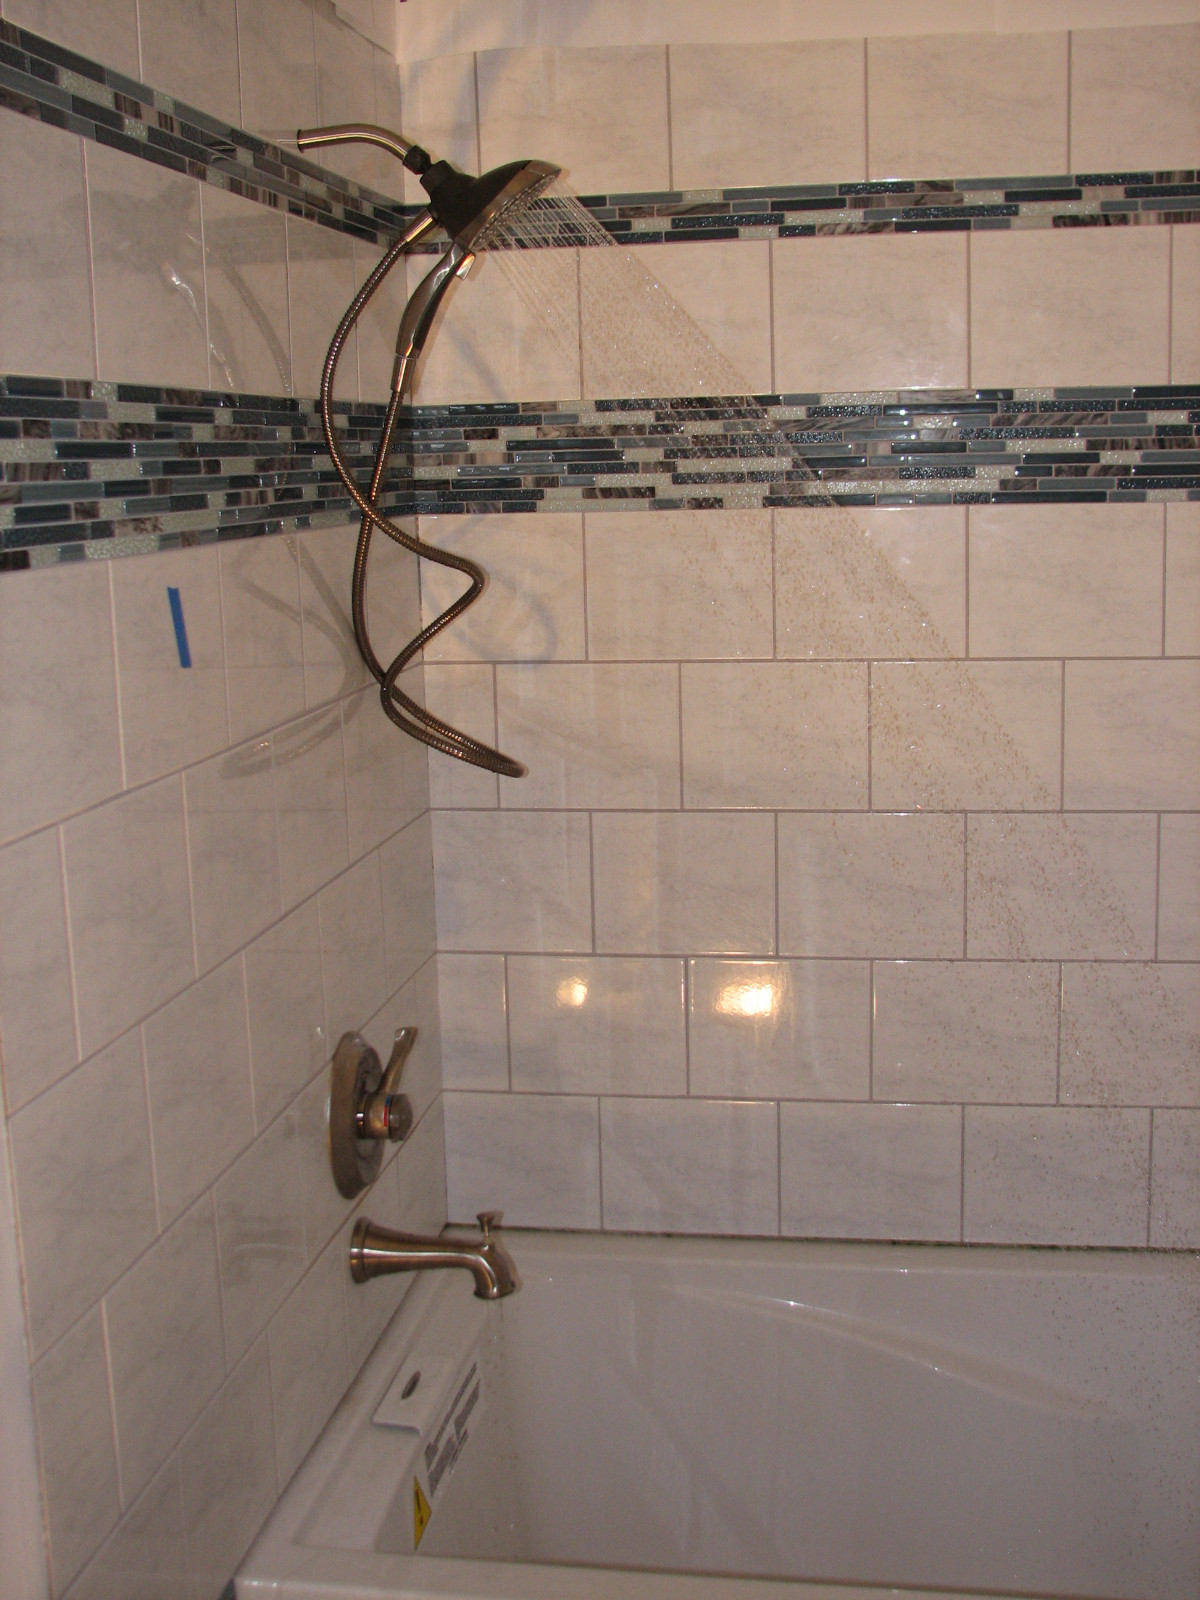 Plumbing Why Does My Shower Head Drip When The Tub Faucet Is On Home Improvement Stack Exchange